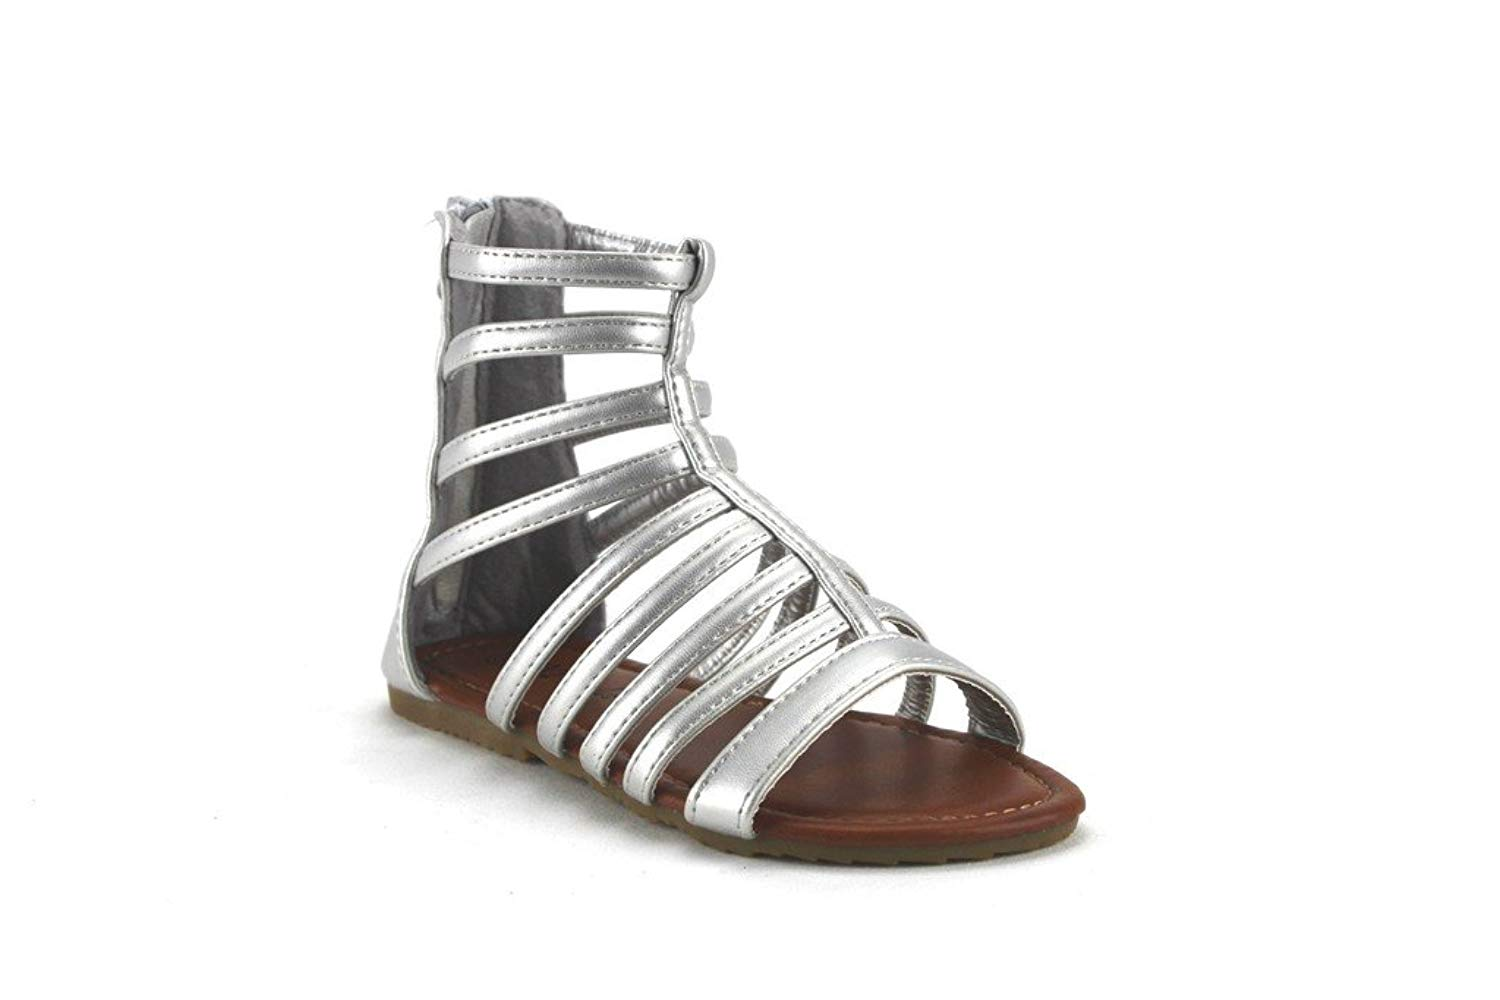 f179d8f8f81a Get Quotations · Ositos QQ Girls Kids Pipper-65 Tall Ankle High Caged  Gladiator Zipped Sandals Shoes